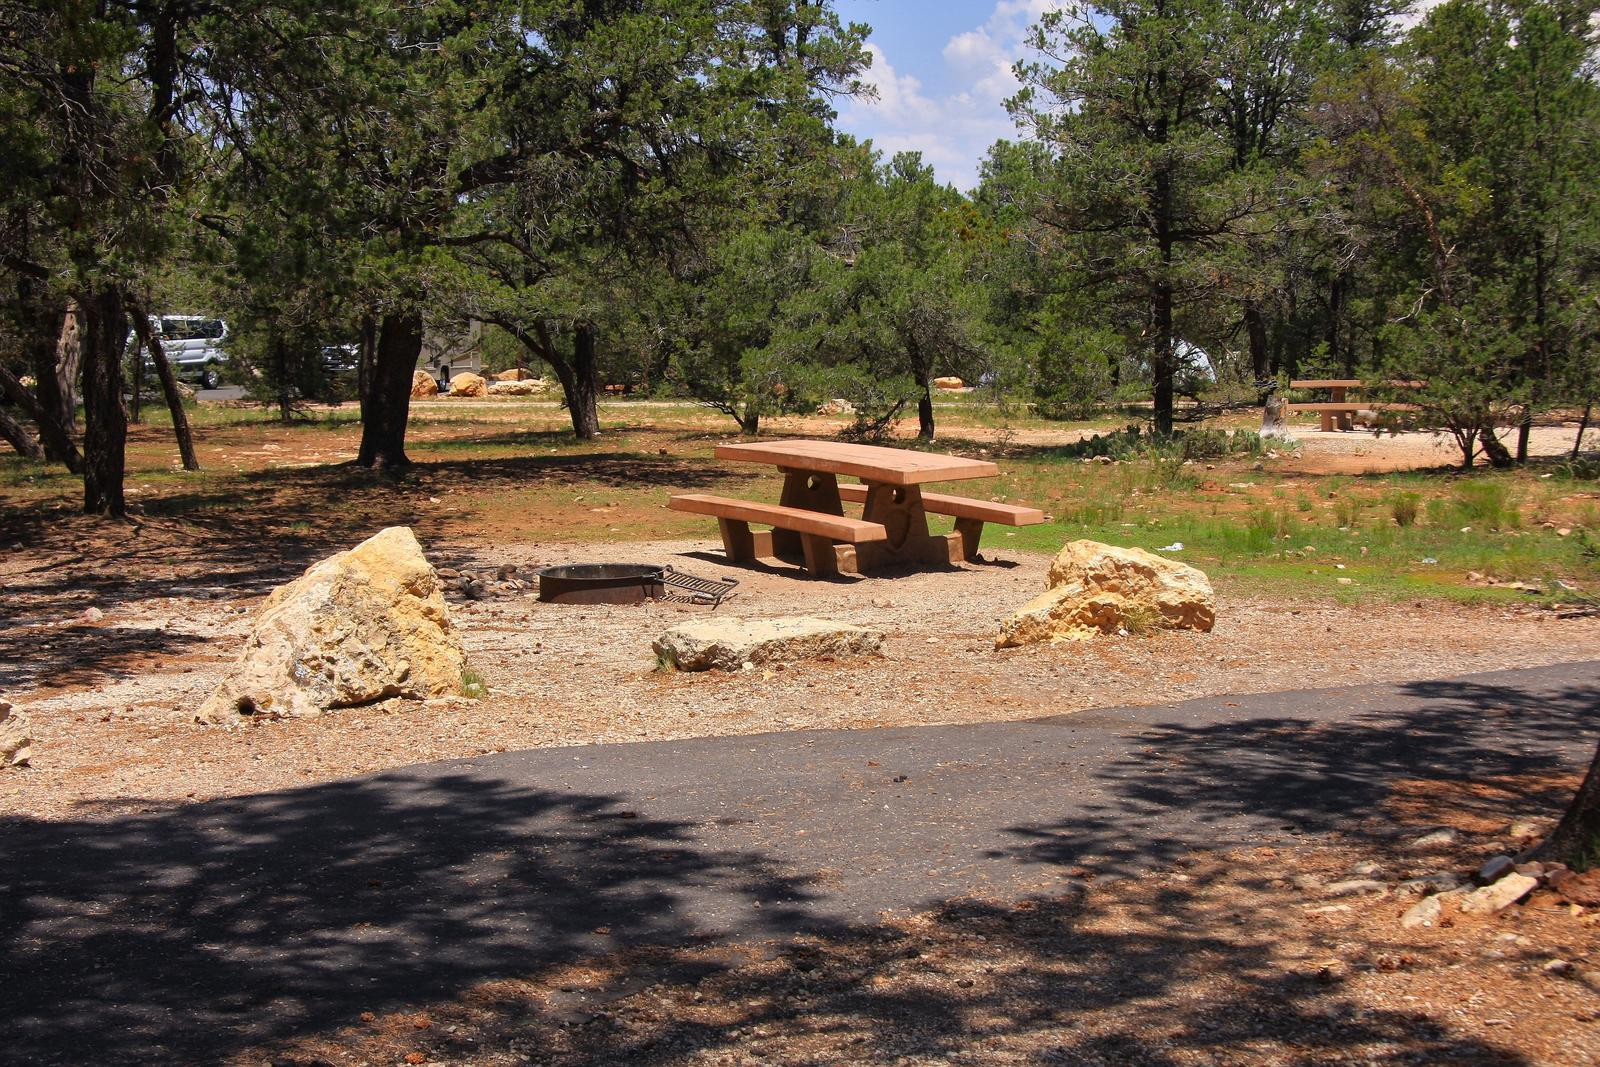 Picnic table, fire pit, and parking spot, Mather CampgroundPicnic table, fire pit, and parking spot for Juniper Loop 123, Mather Campground